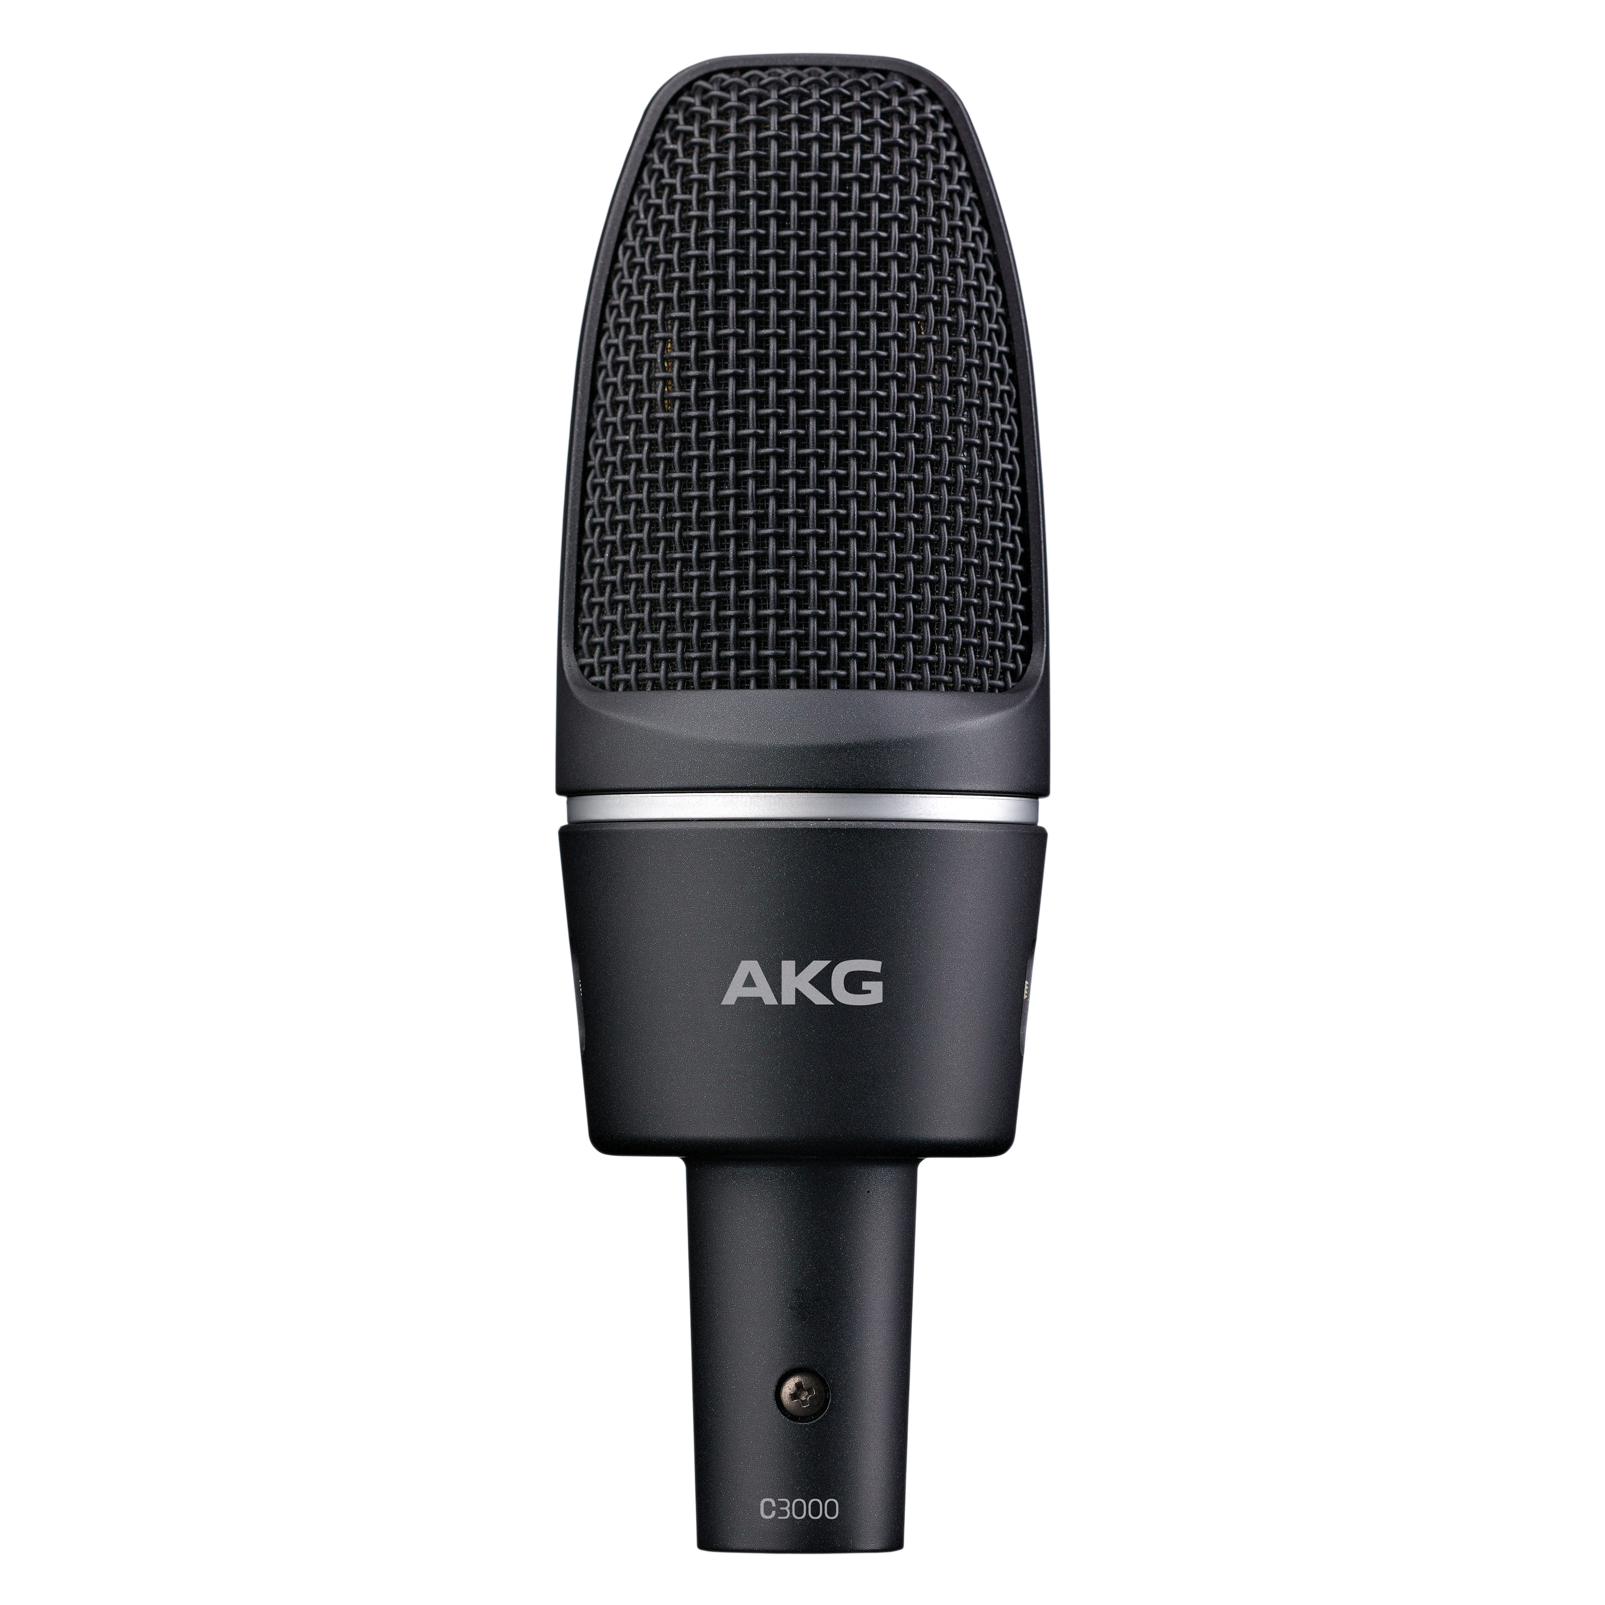 C3000 - Black - High-performance large-diaphragm condenser microphone - Hero